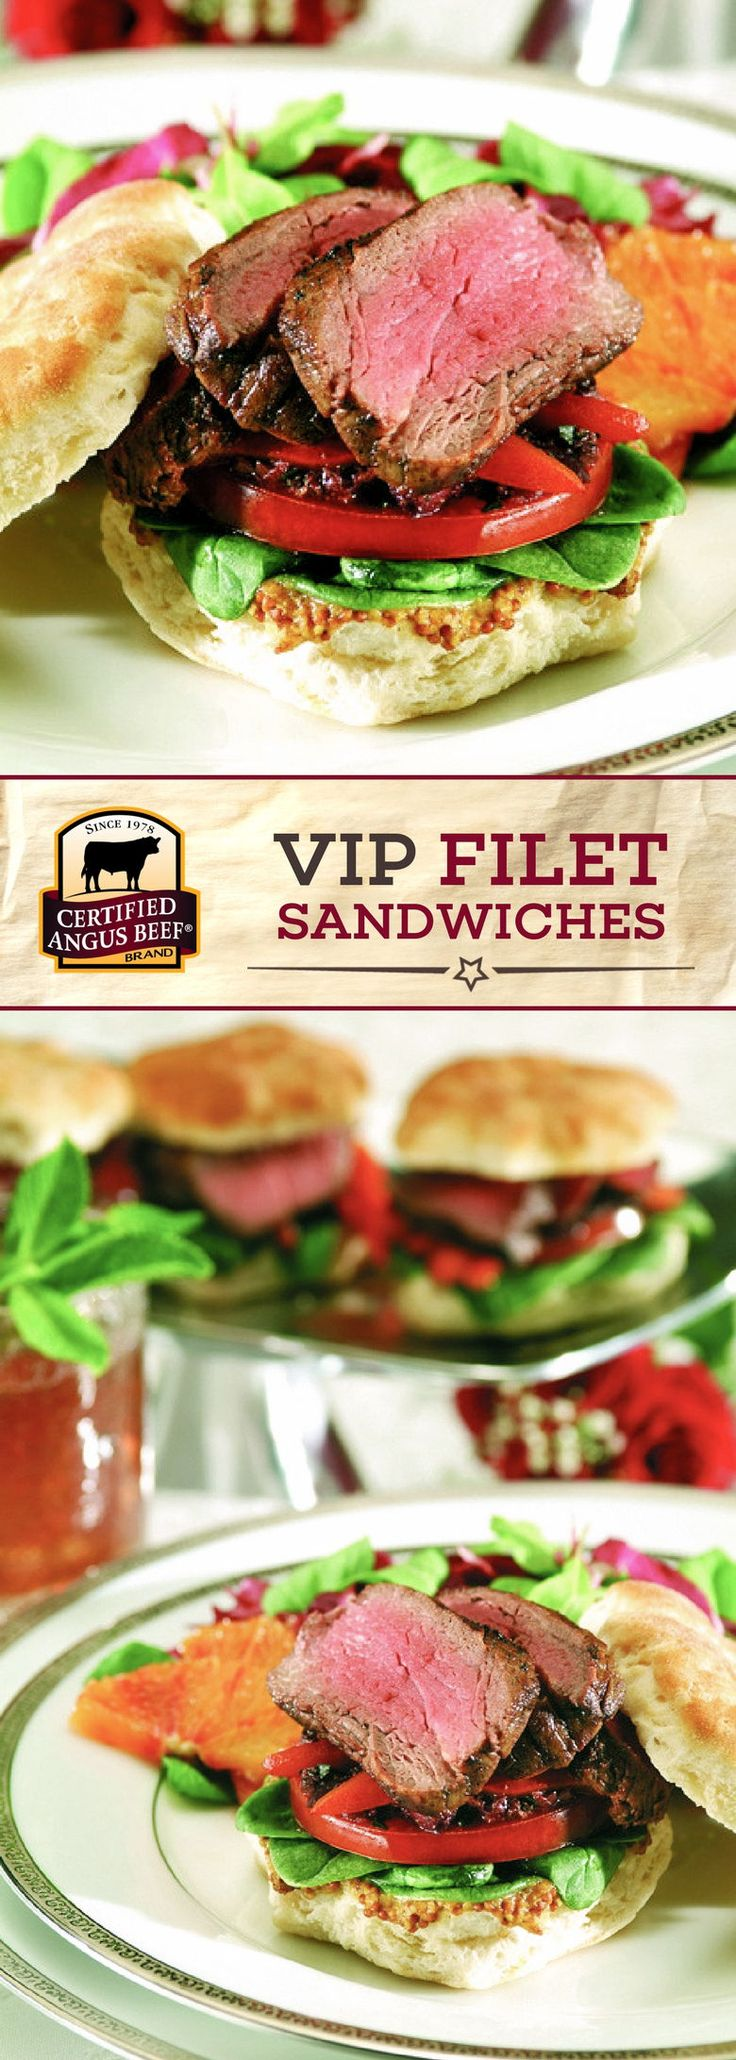 You'll feel like a VIP once you try one of these VIP filet sandwiches! Made with Certified Angus Beef®️ brand tenderloin roast, there's no denying that this sandwich means business. Enjoy tender BEEF on buttermilk biscuits, topped with mustard, spinach leaves, roasted red peppers and tapenade!  #bestangusbeef #certifiedangusbeef #beefrecipe #easyrecipe #sandwichrecipe